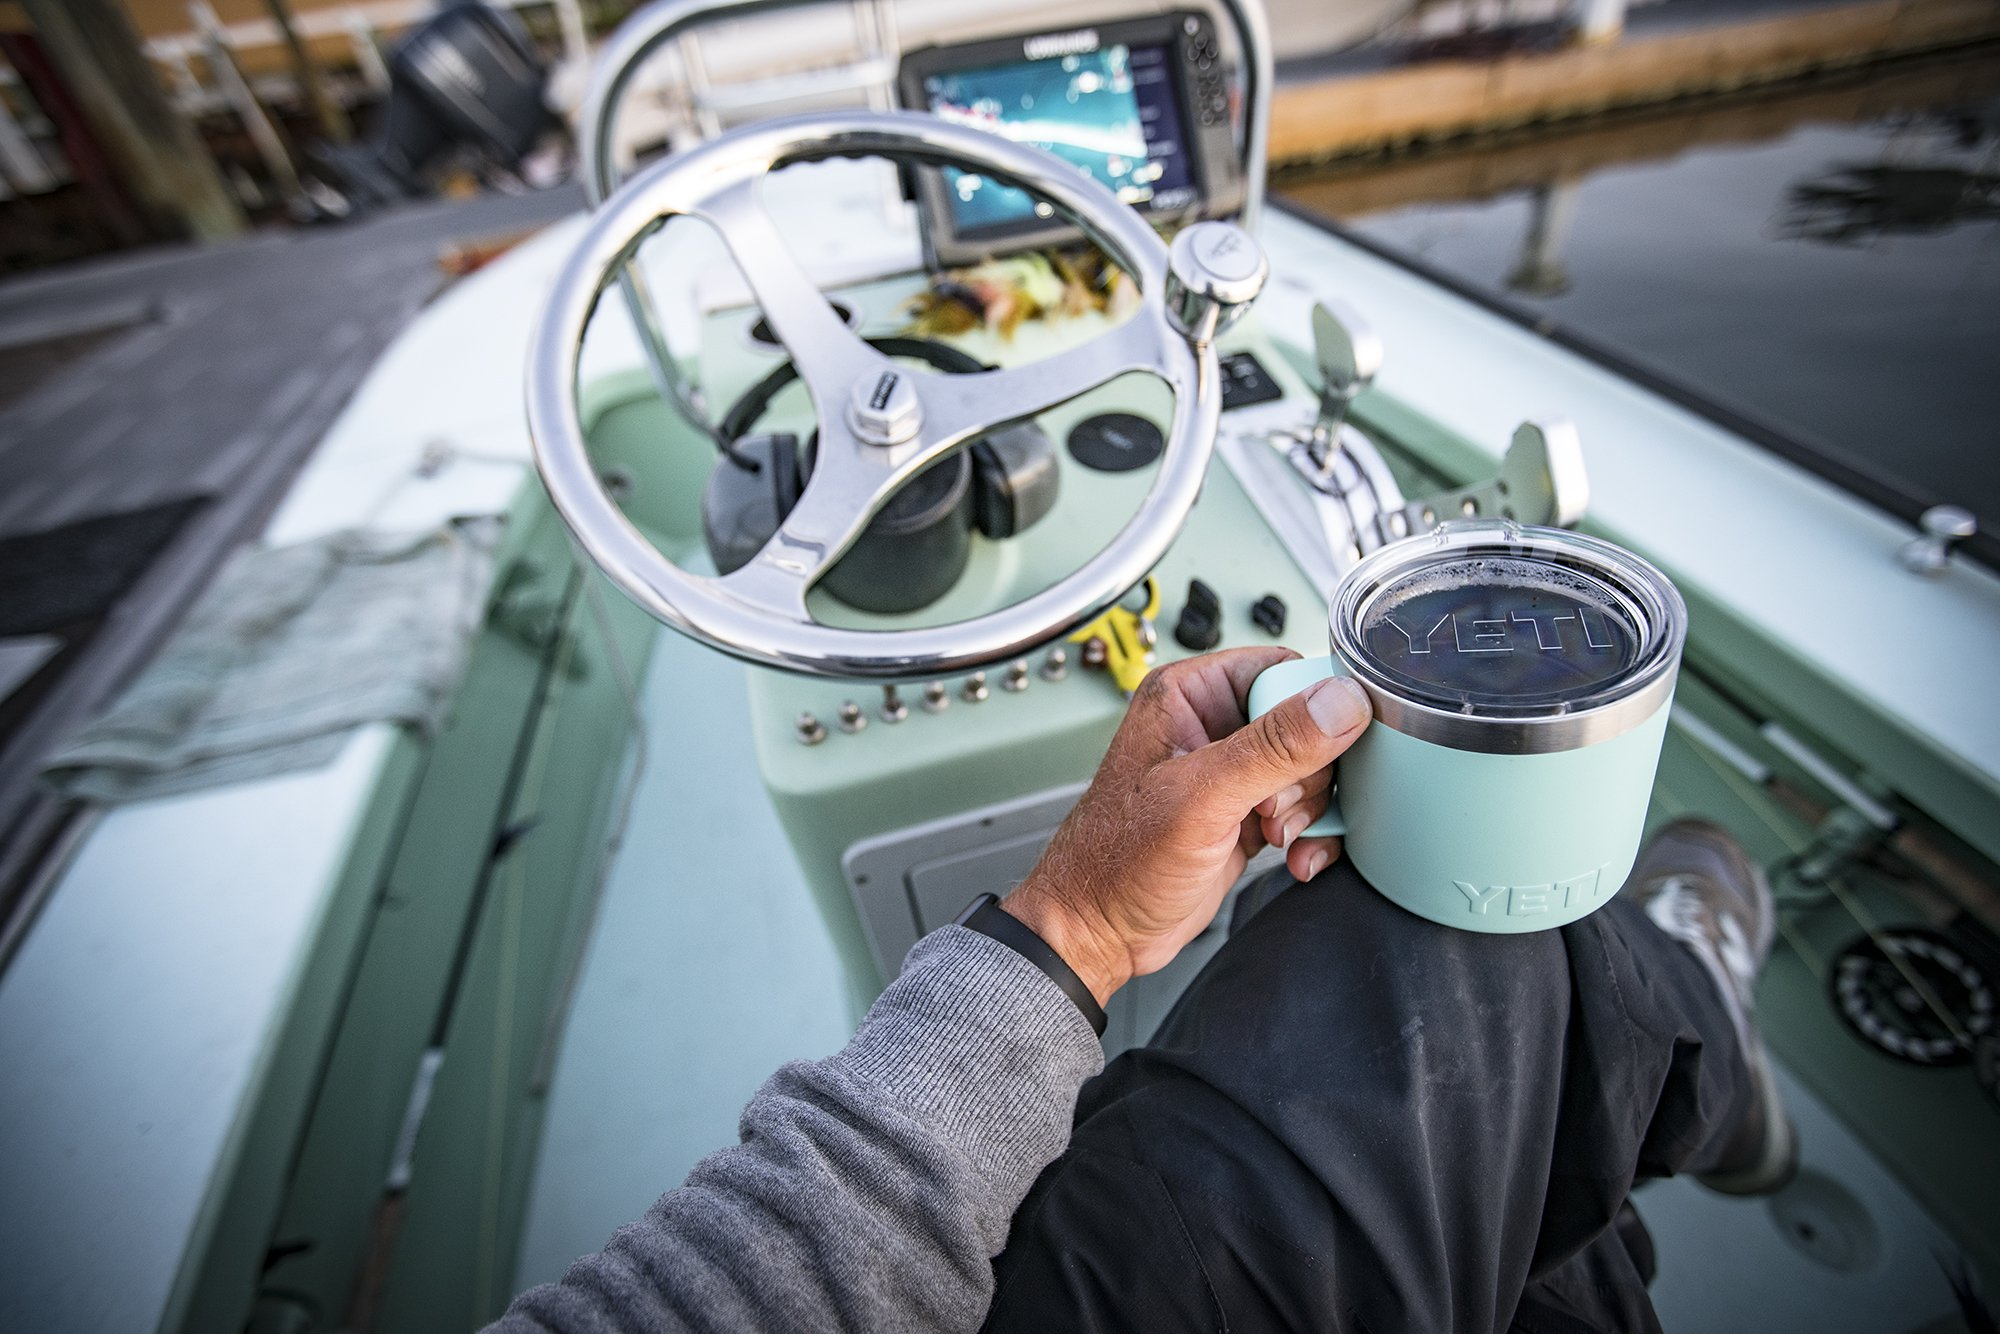 Yeti vs Hydro Flask vs Swell - What is the Best Insulated